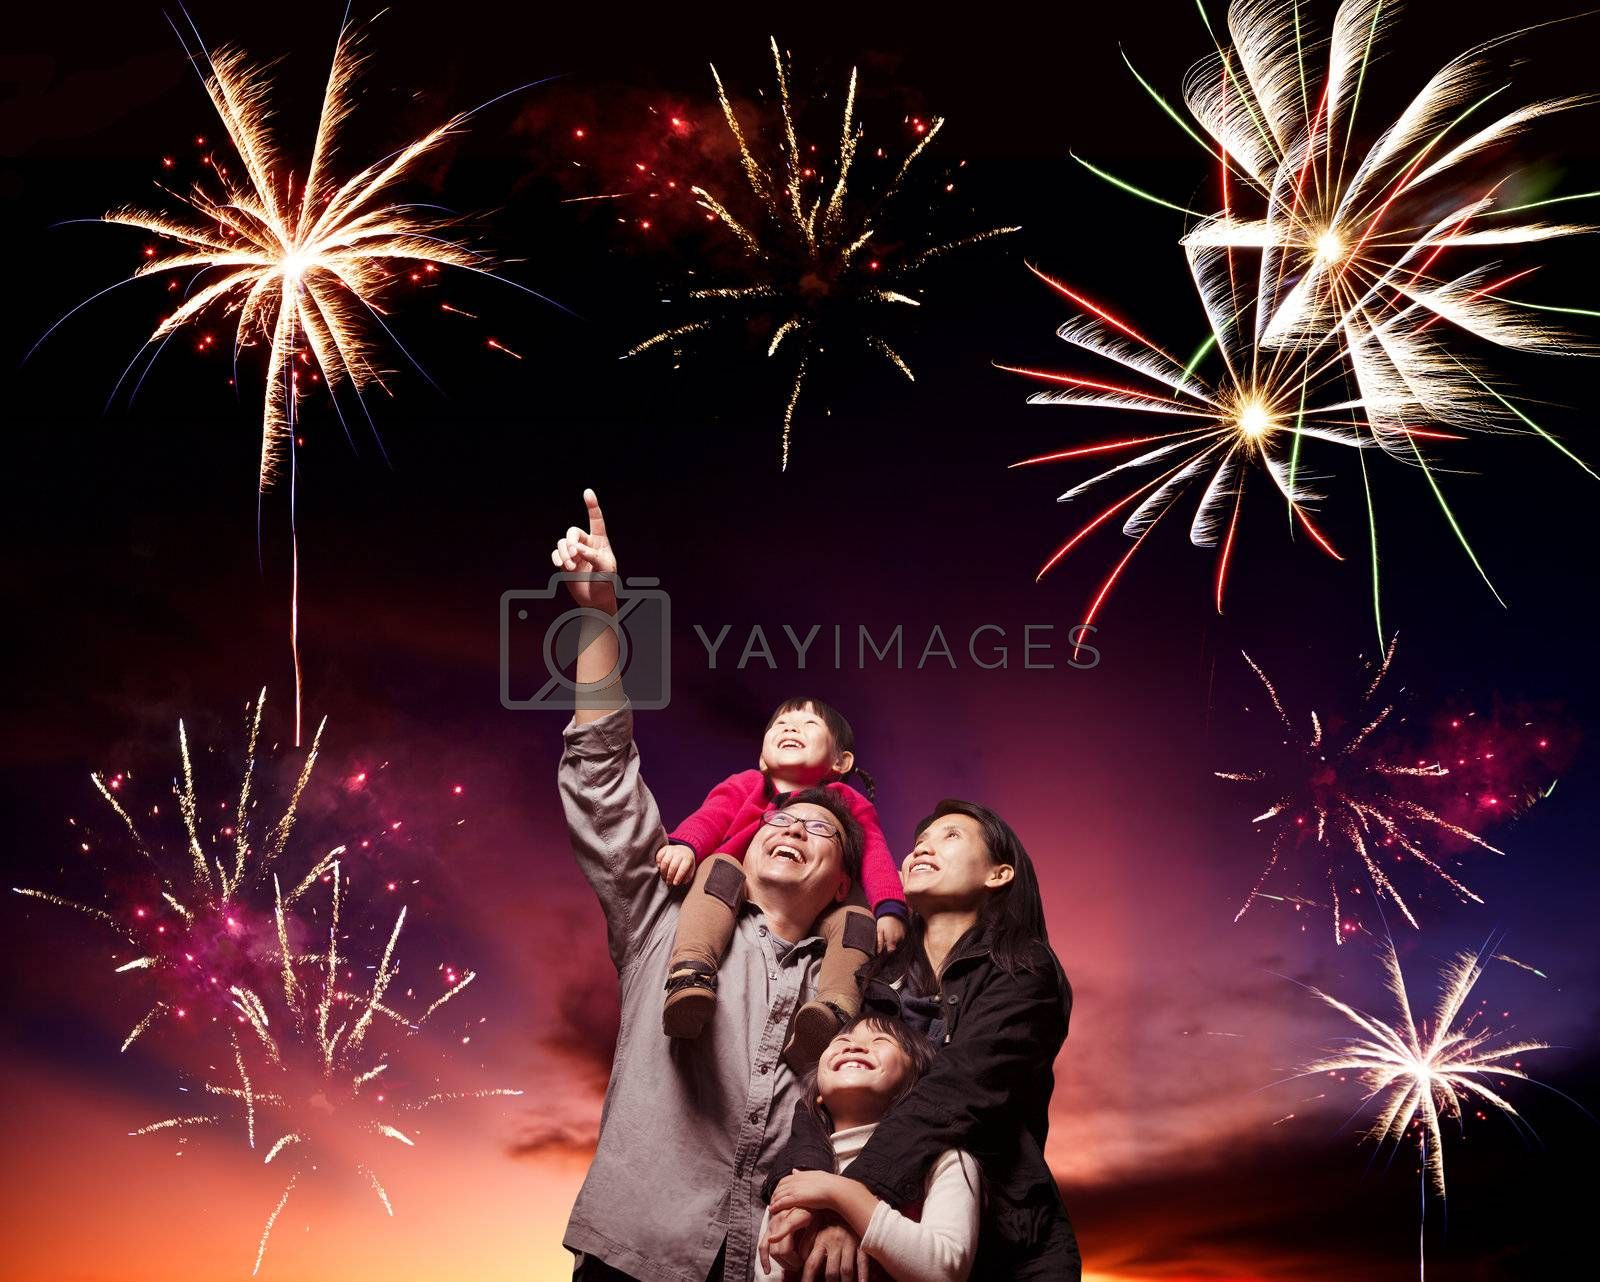 happy family looking fireworks in the evening sky